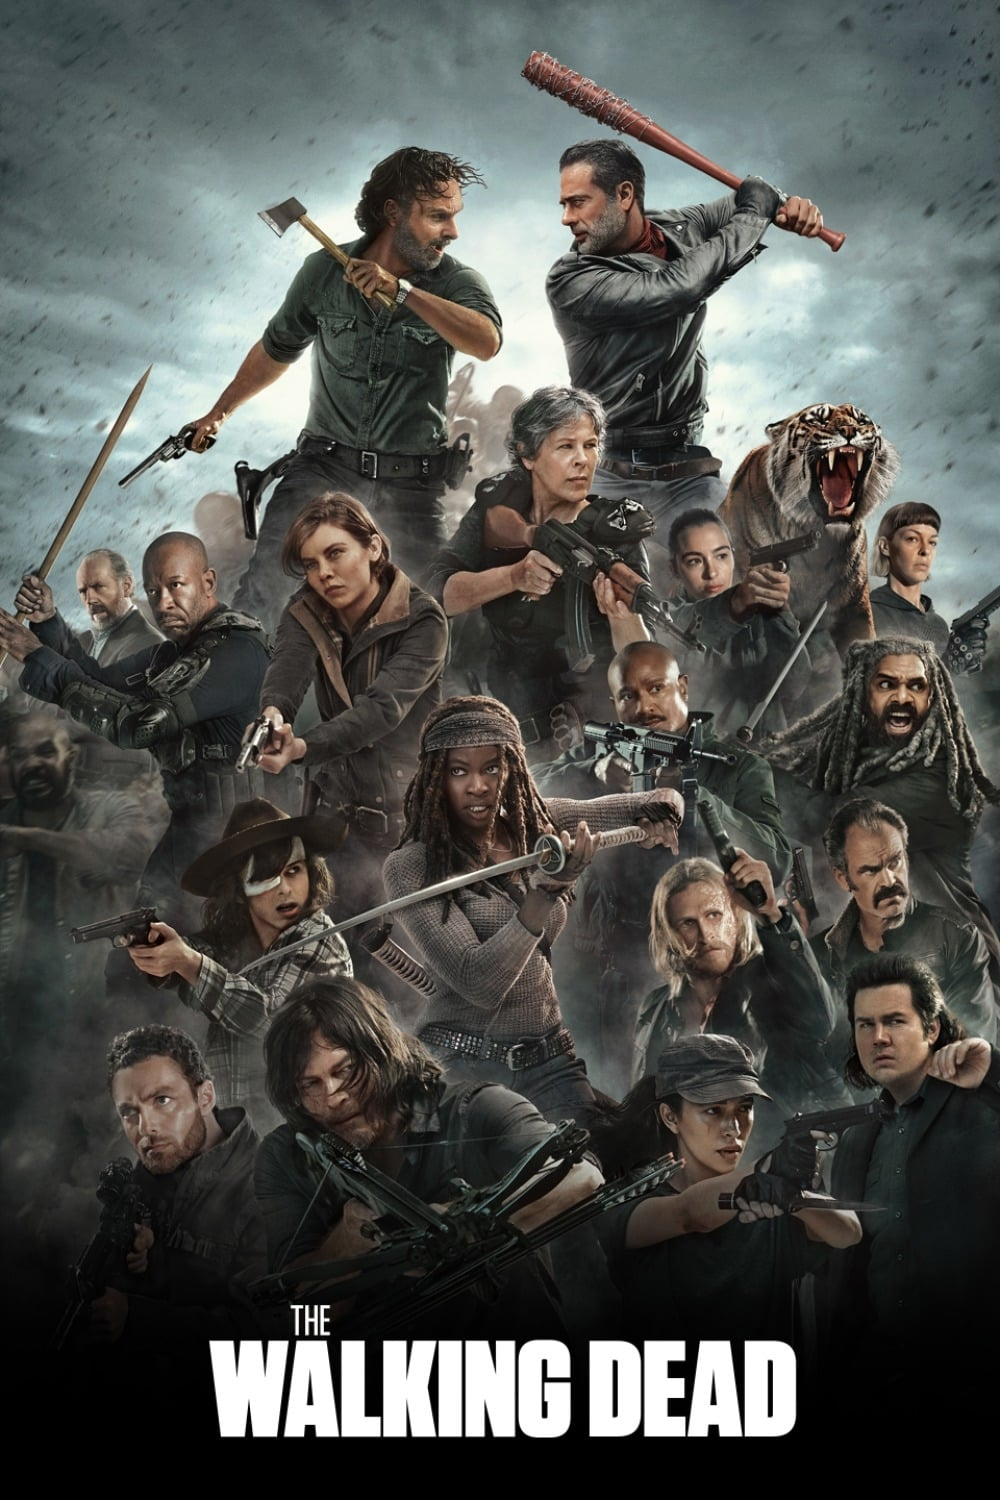 Assistir The Walking Dead - 8x07 - Legendado - Episódio 7 Online Legendado 1080p